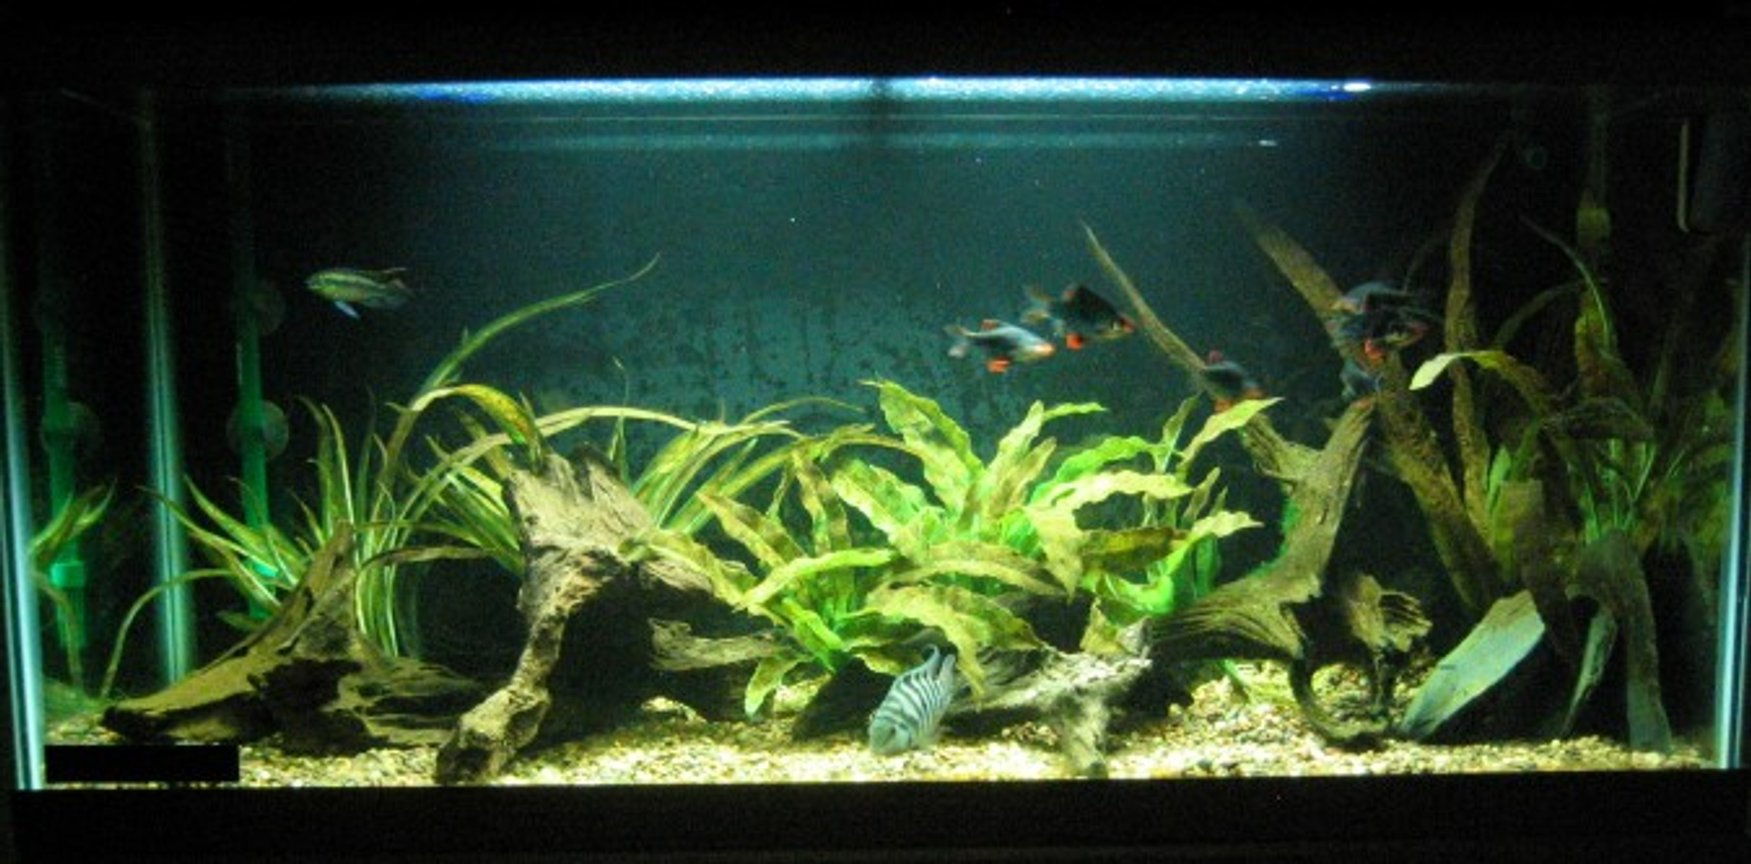 30 gallons freshwater fish tank (mostly fish and non-living decorations) - 30g long convict breeding tank